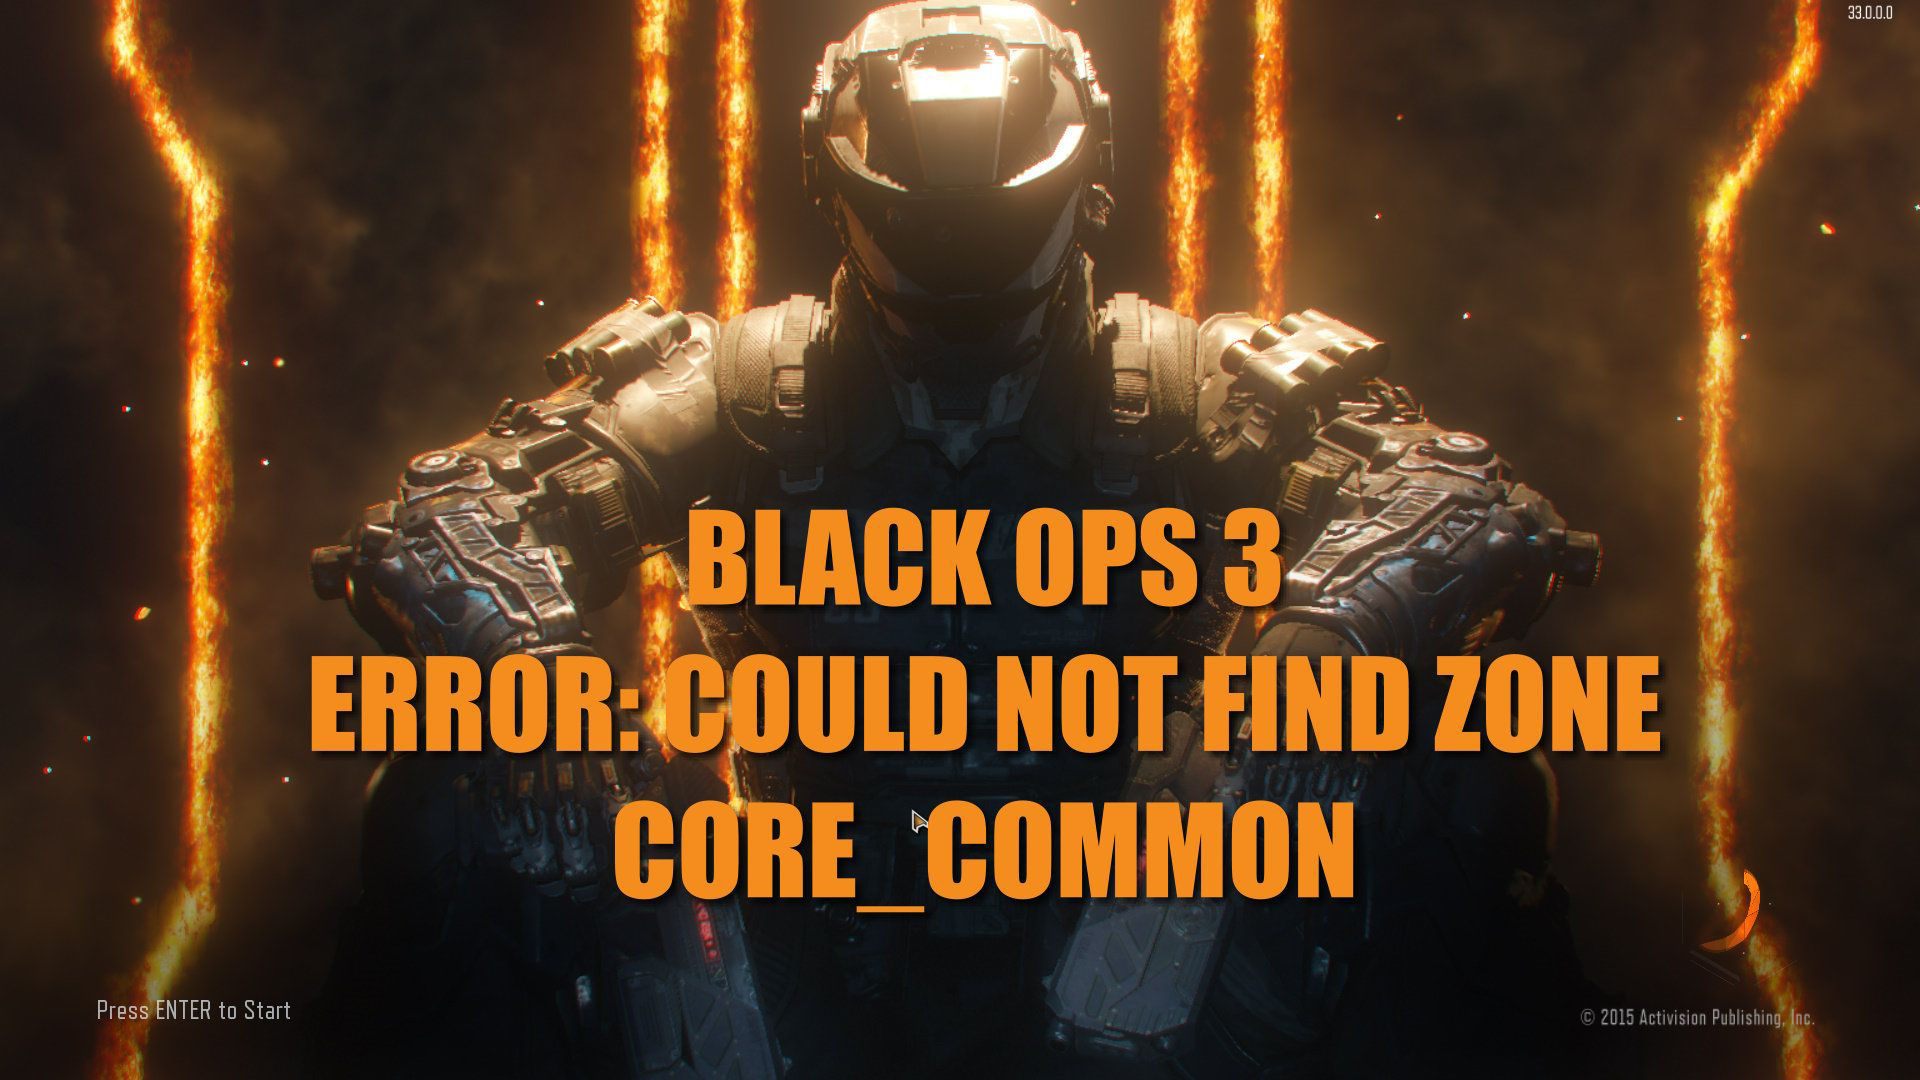 Black Ops 3 ERROR: Could not find zone core_common hatası